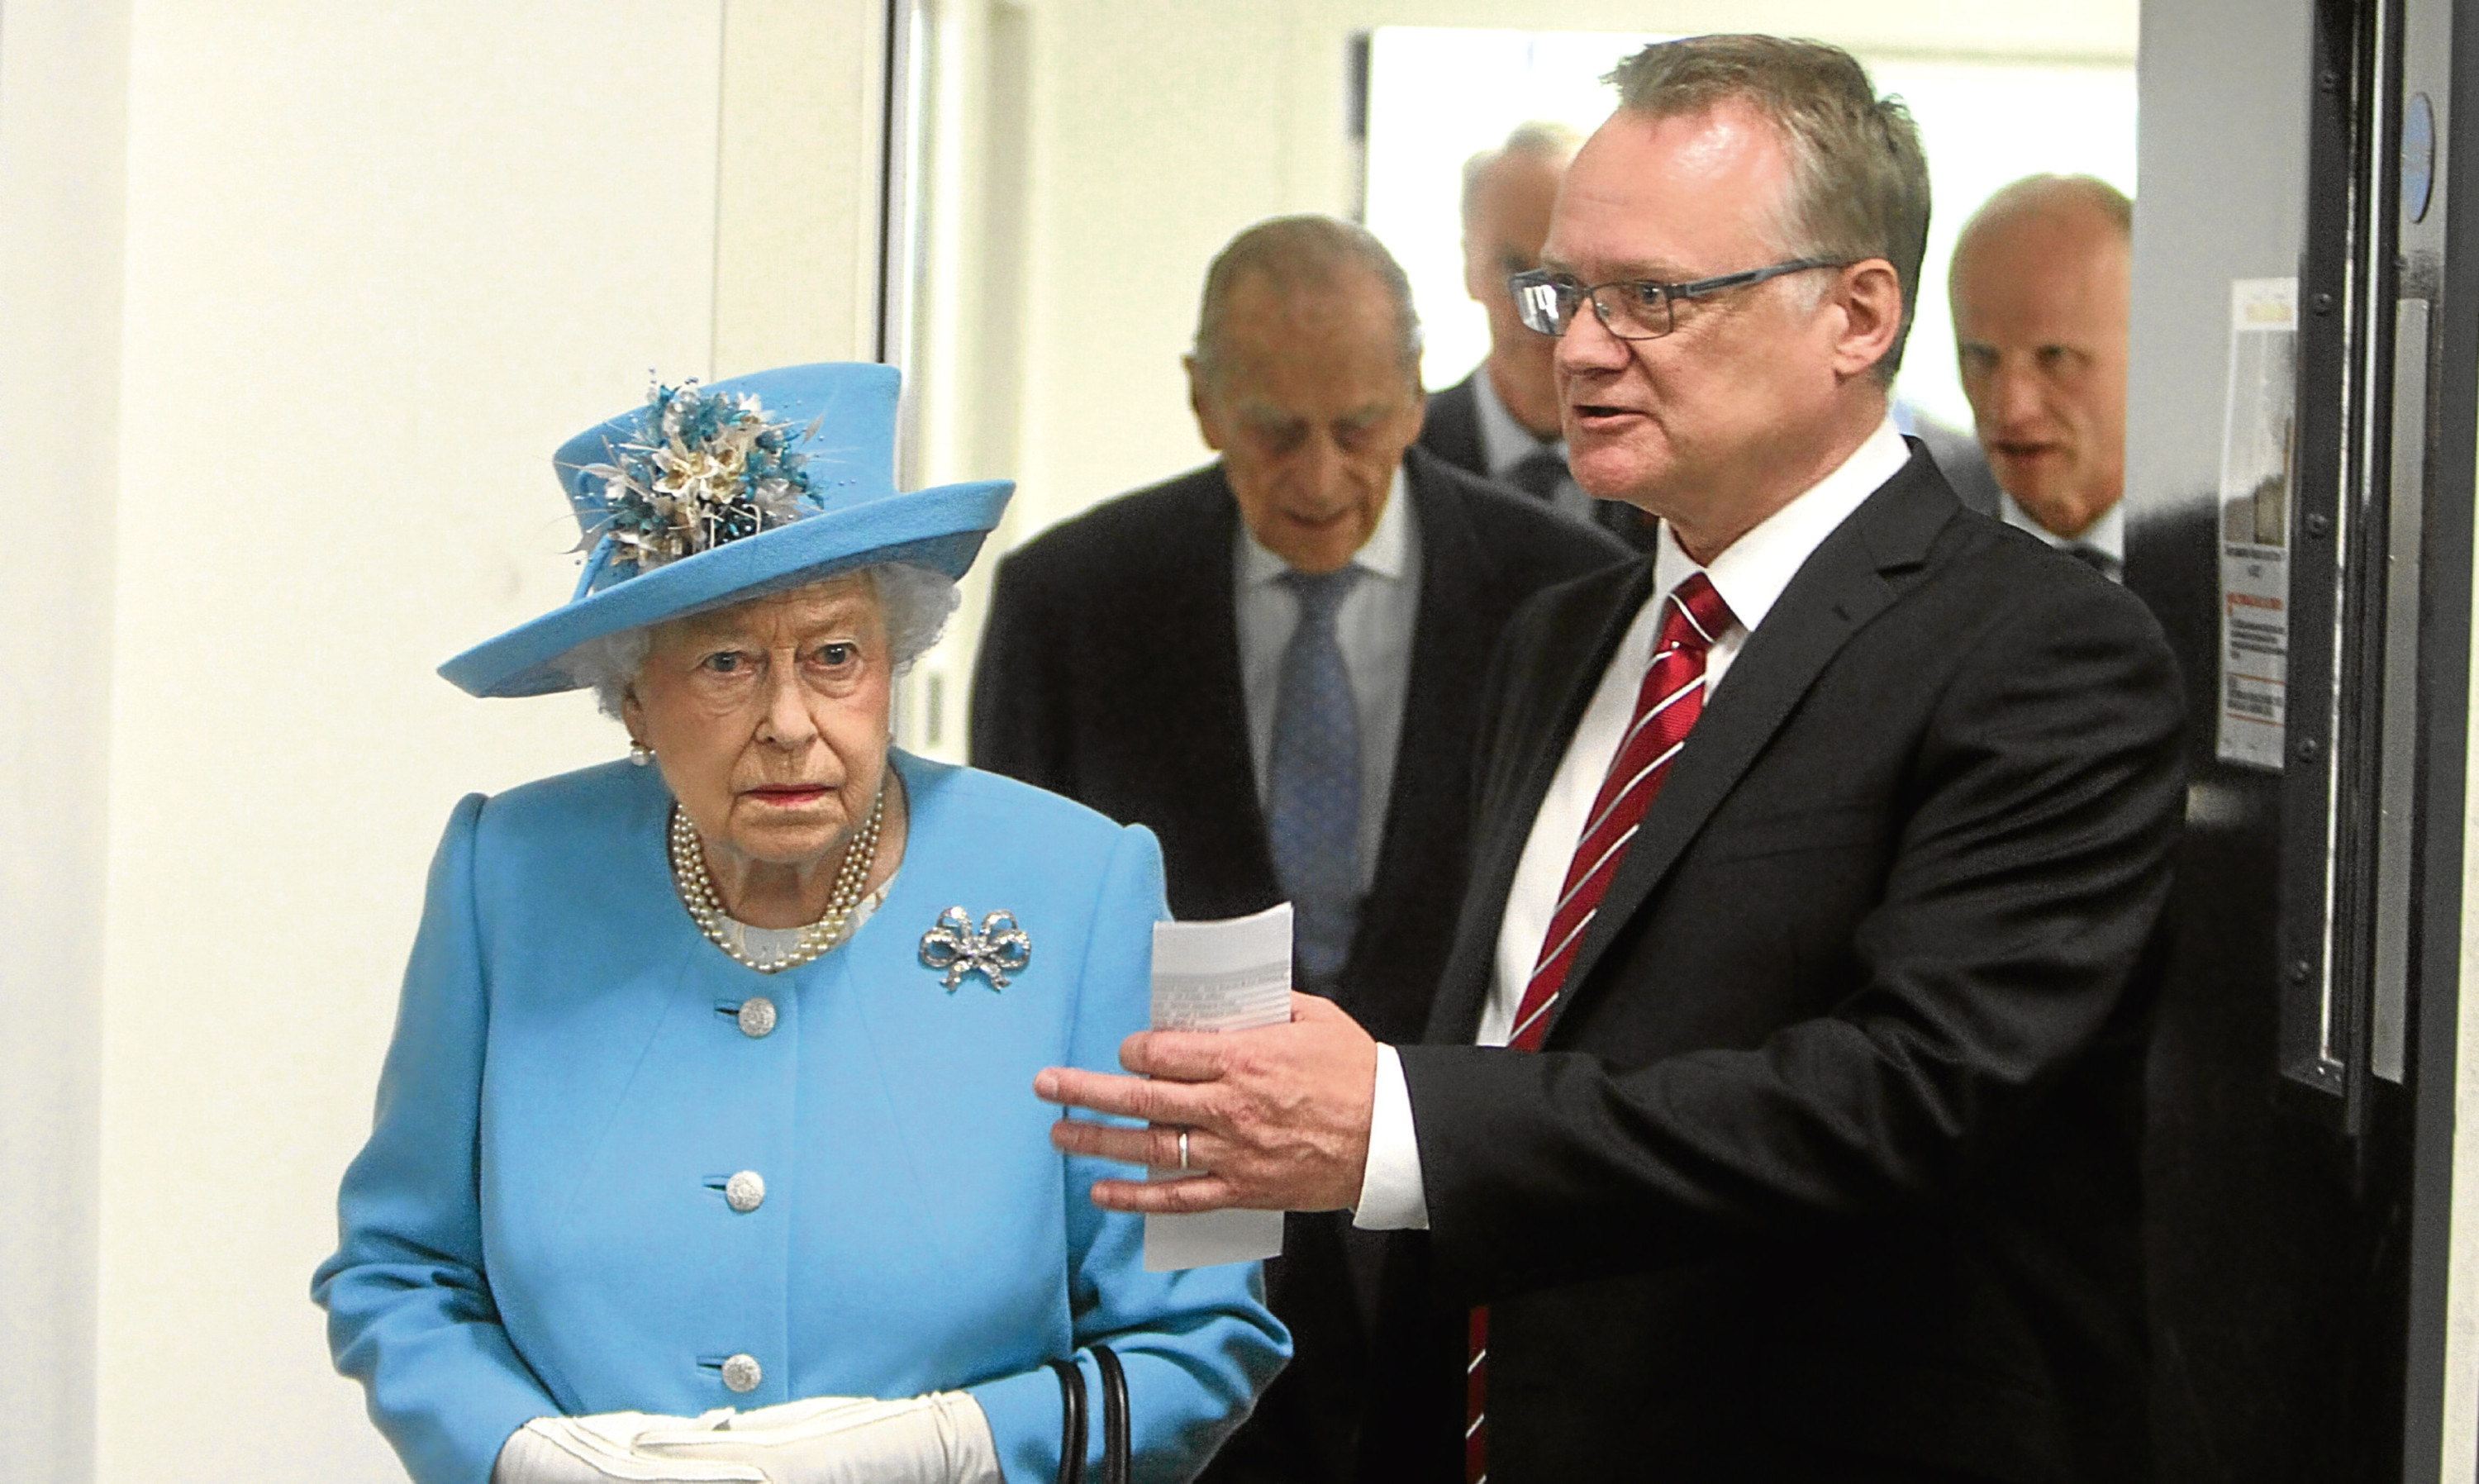 Michelin manager John Reid escorts Her Majesty The Queen on a tour of Michelin's Dundee factory